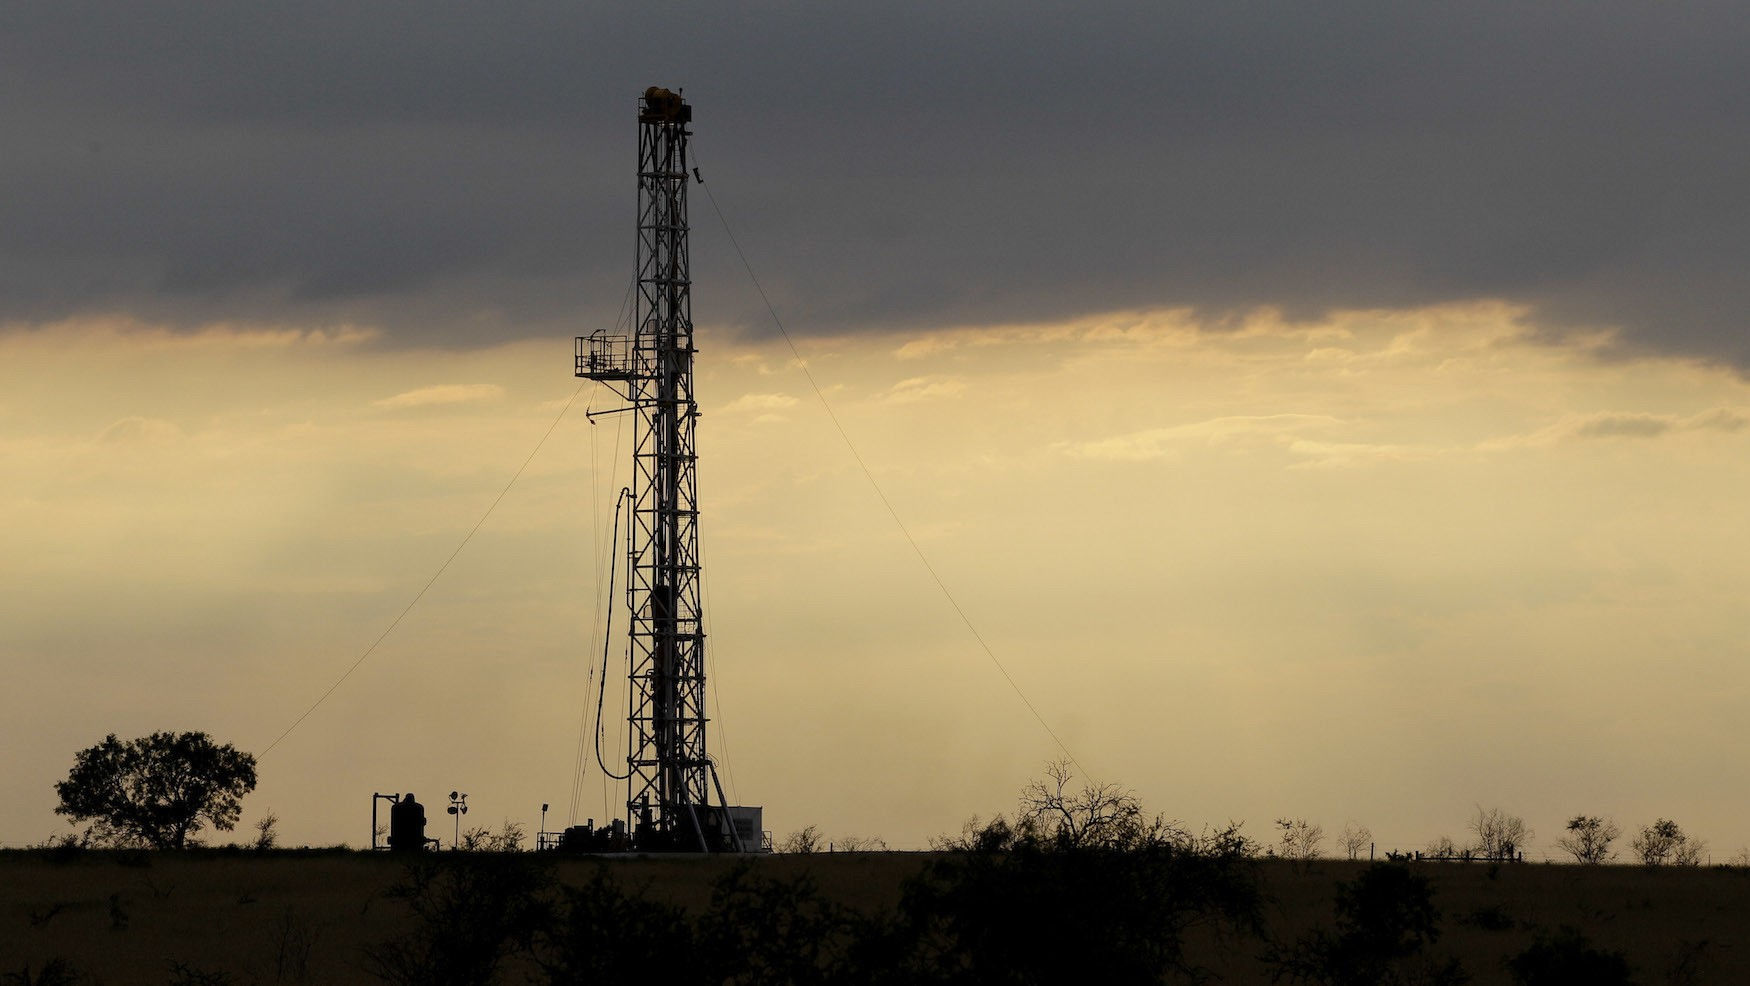 The Texas Legislature Wants to Charge Towns That Ban Fracking